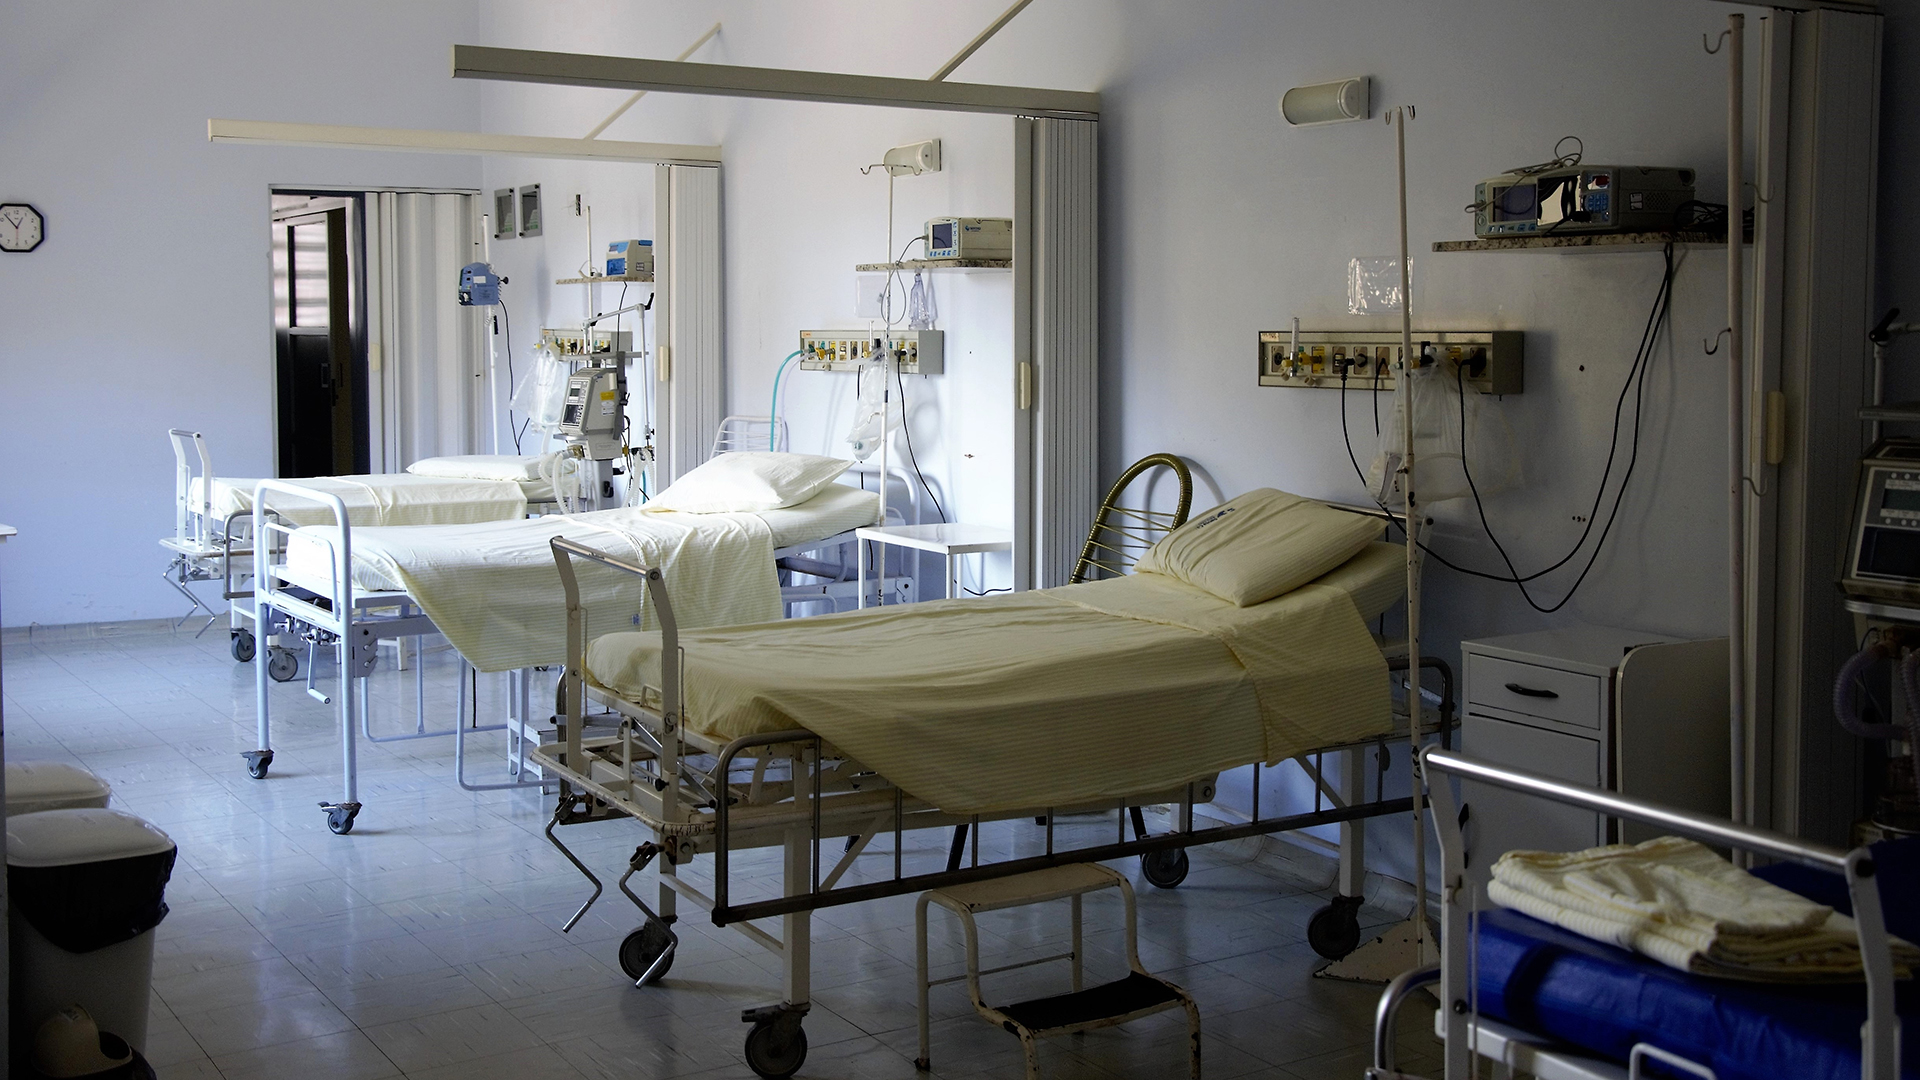 Clinic with empty beds